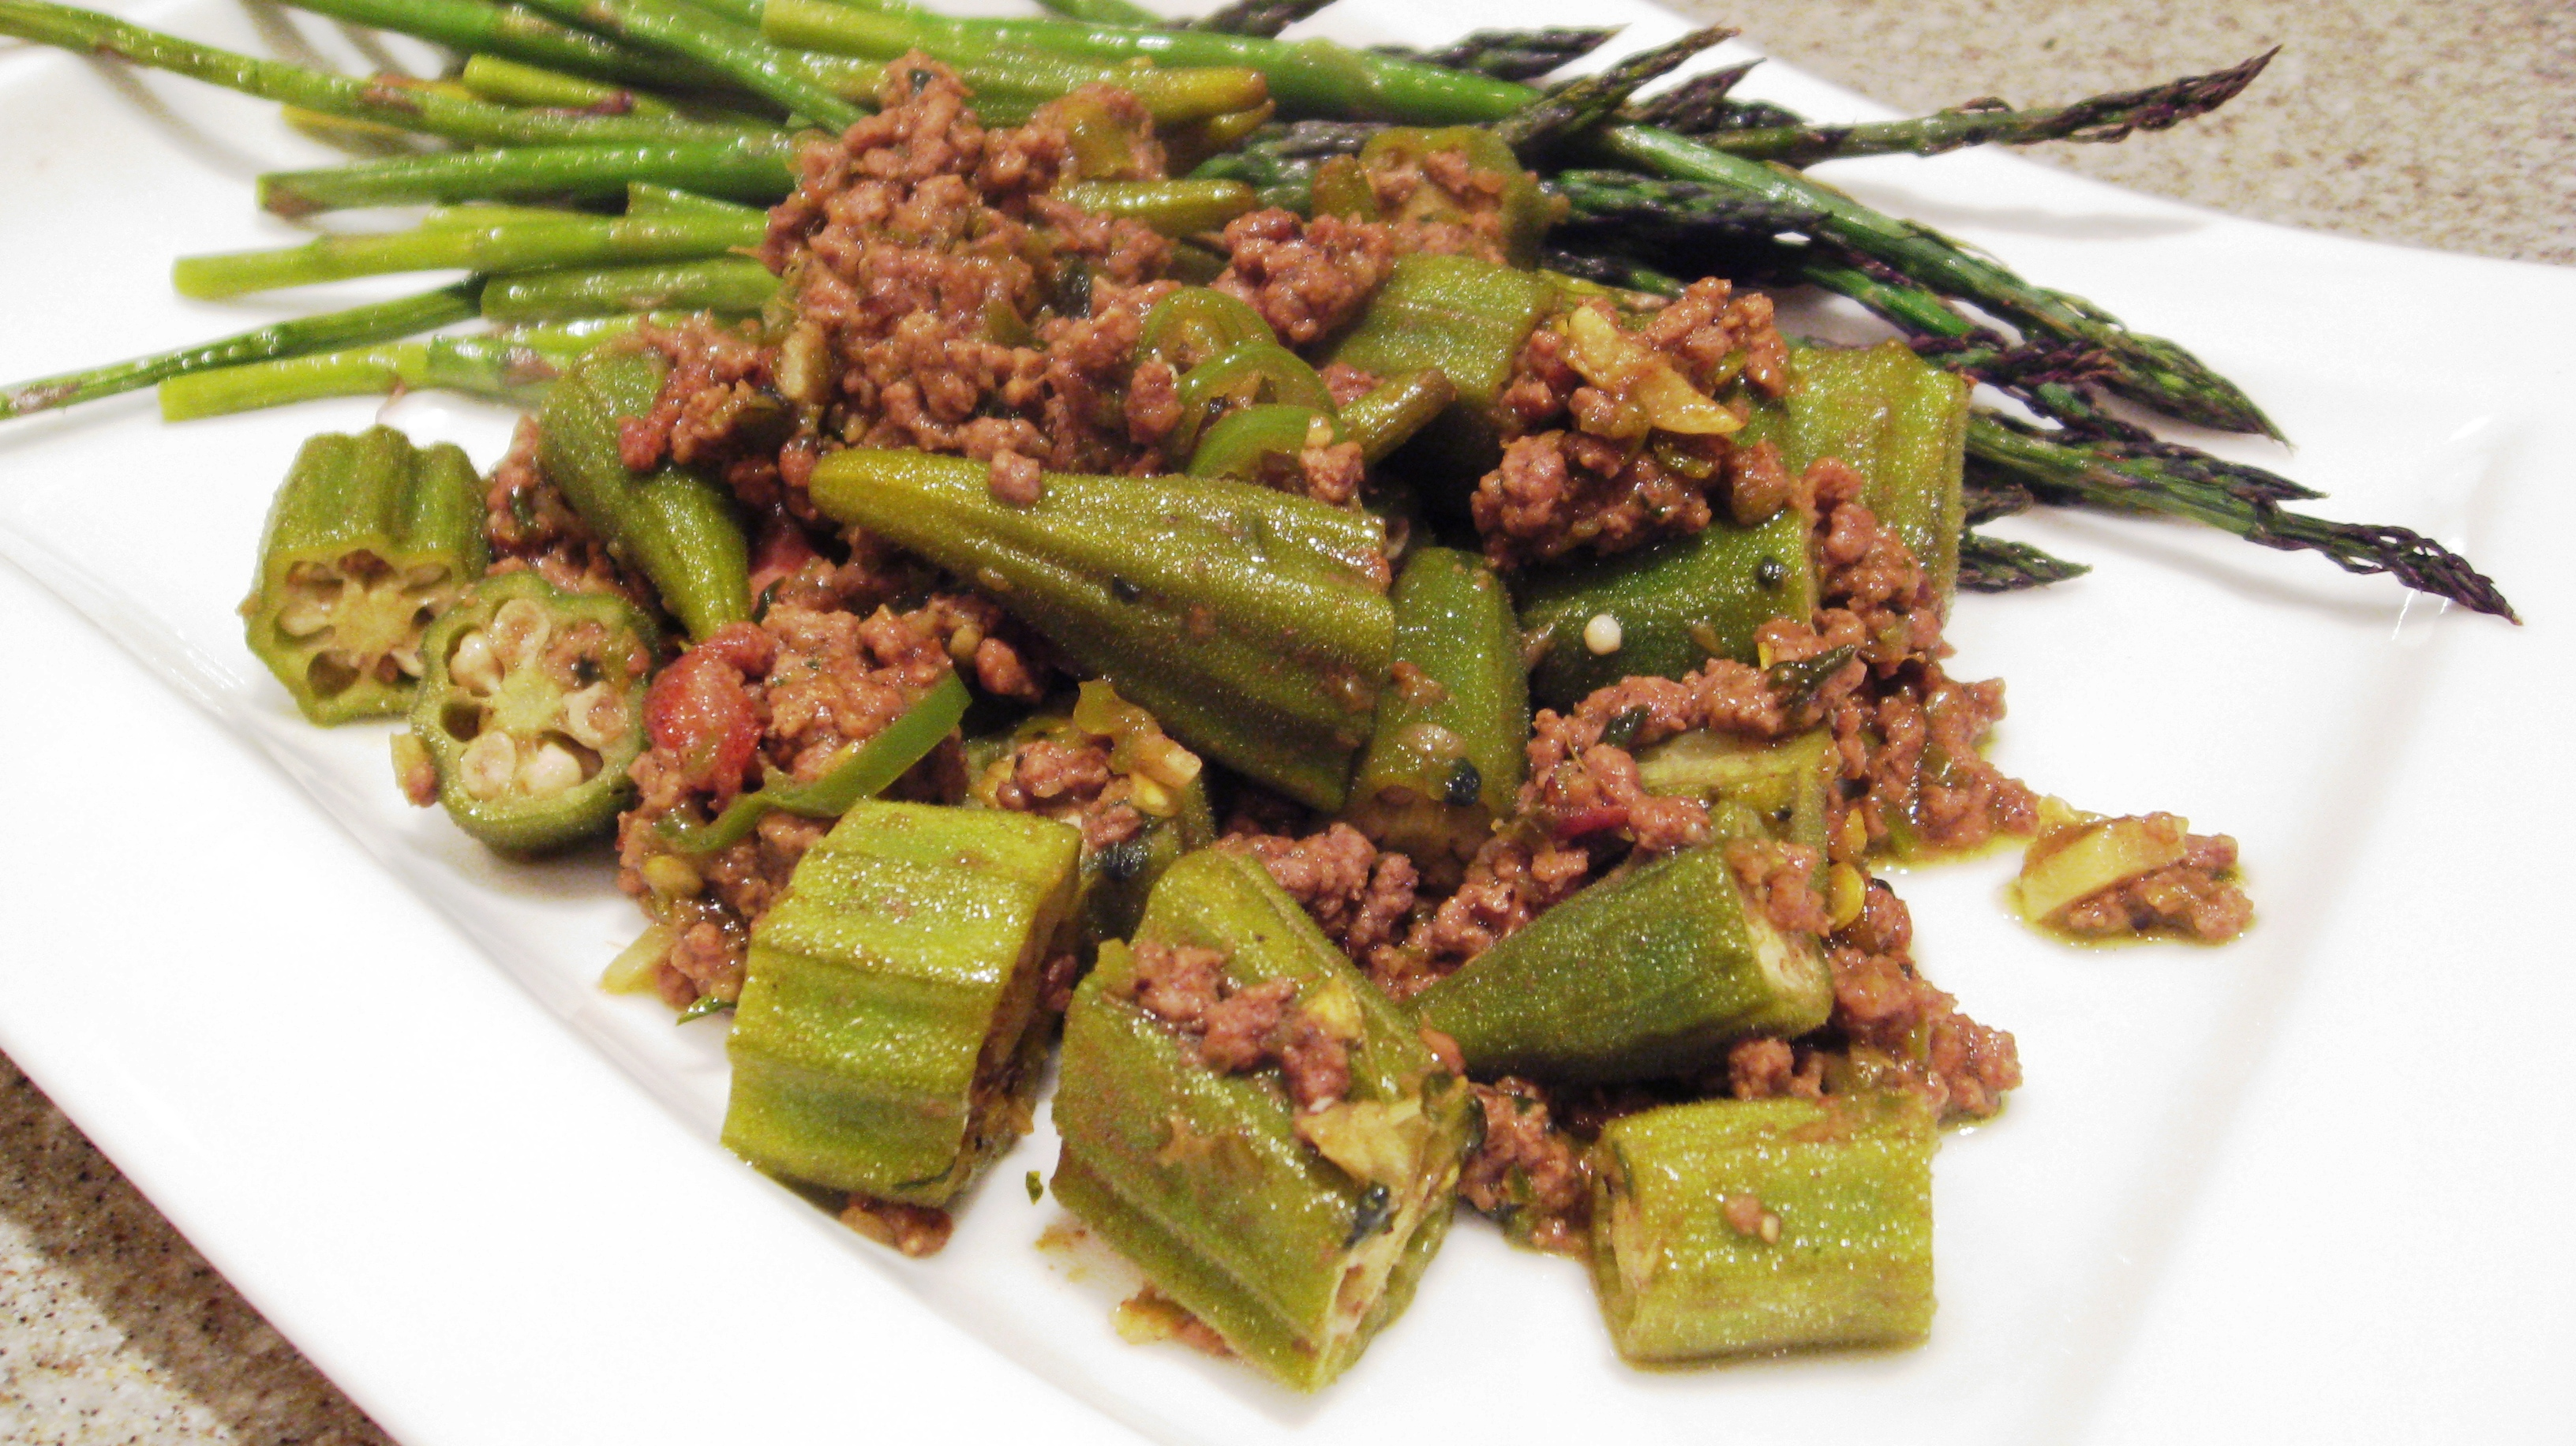 Healthy dishes with ground beef